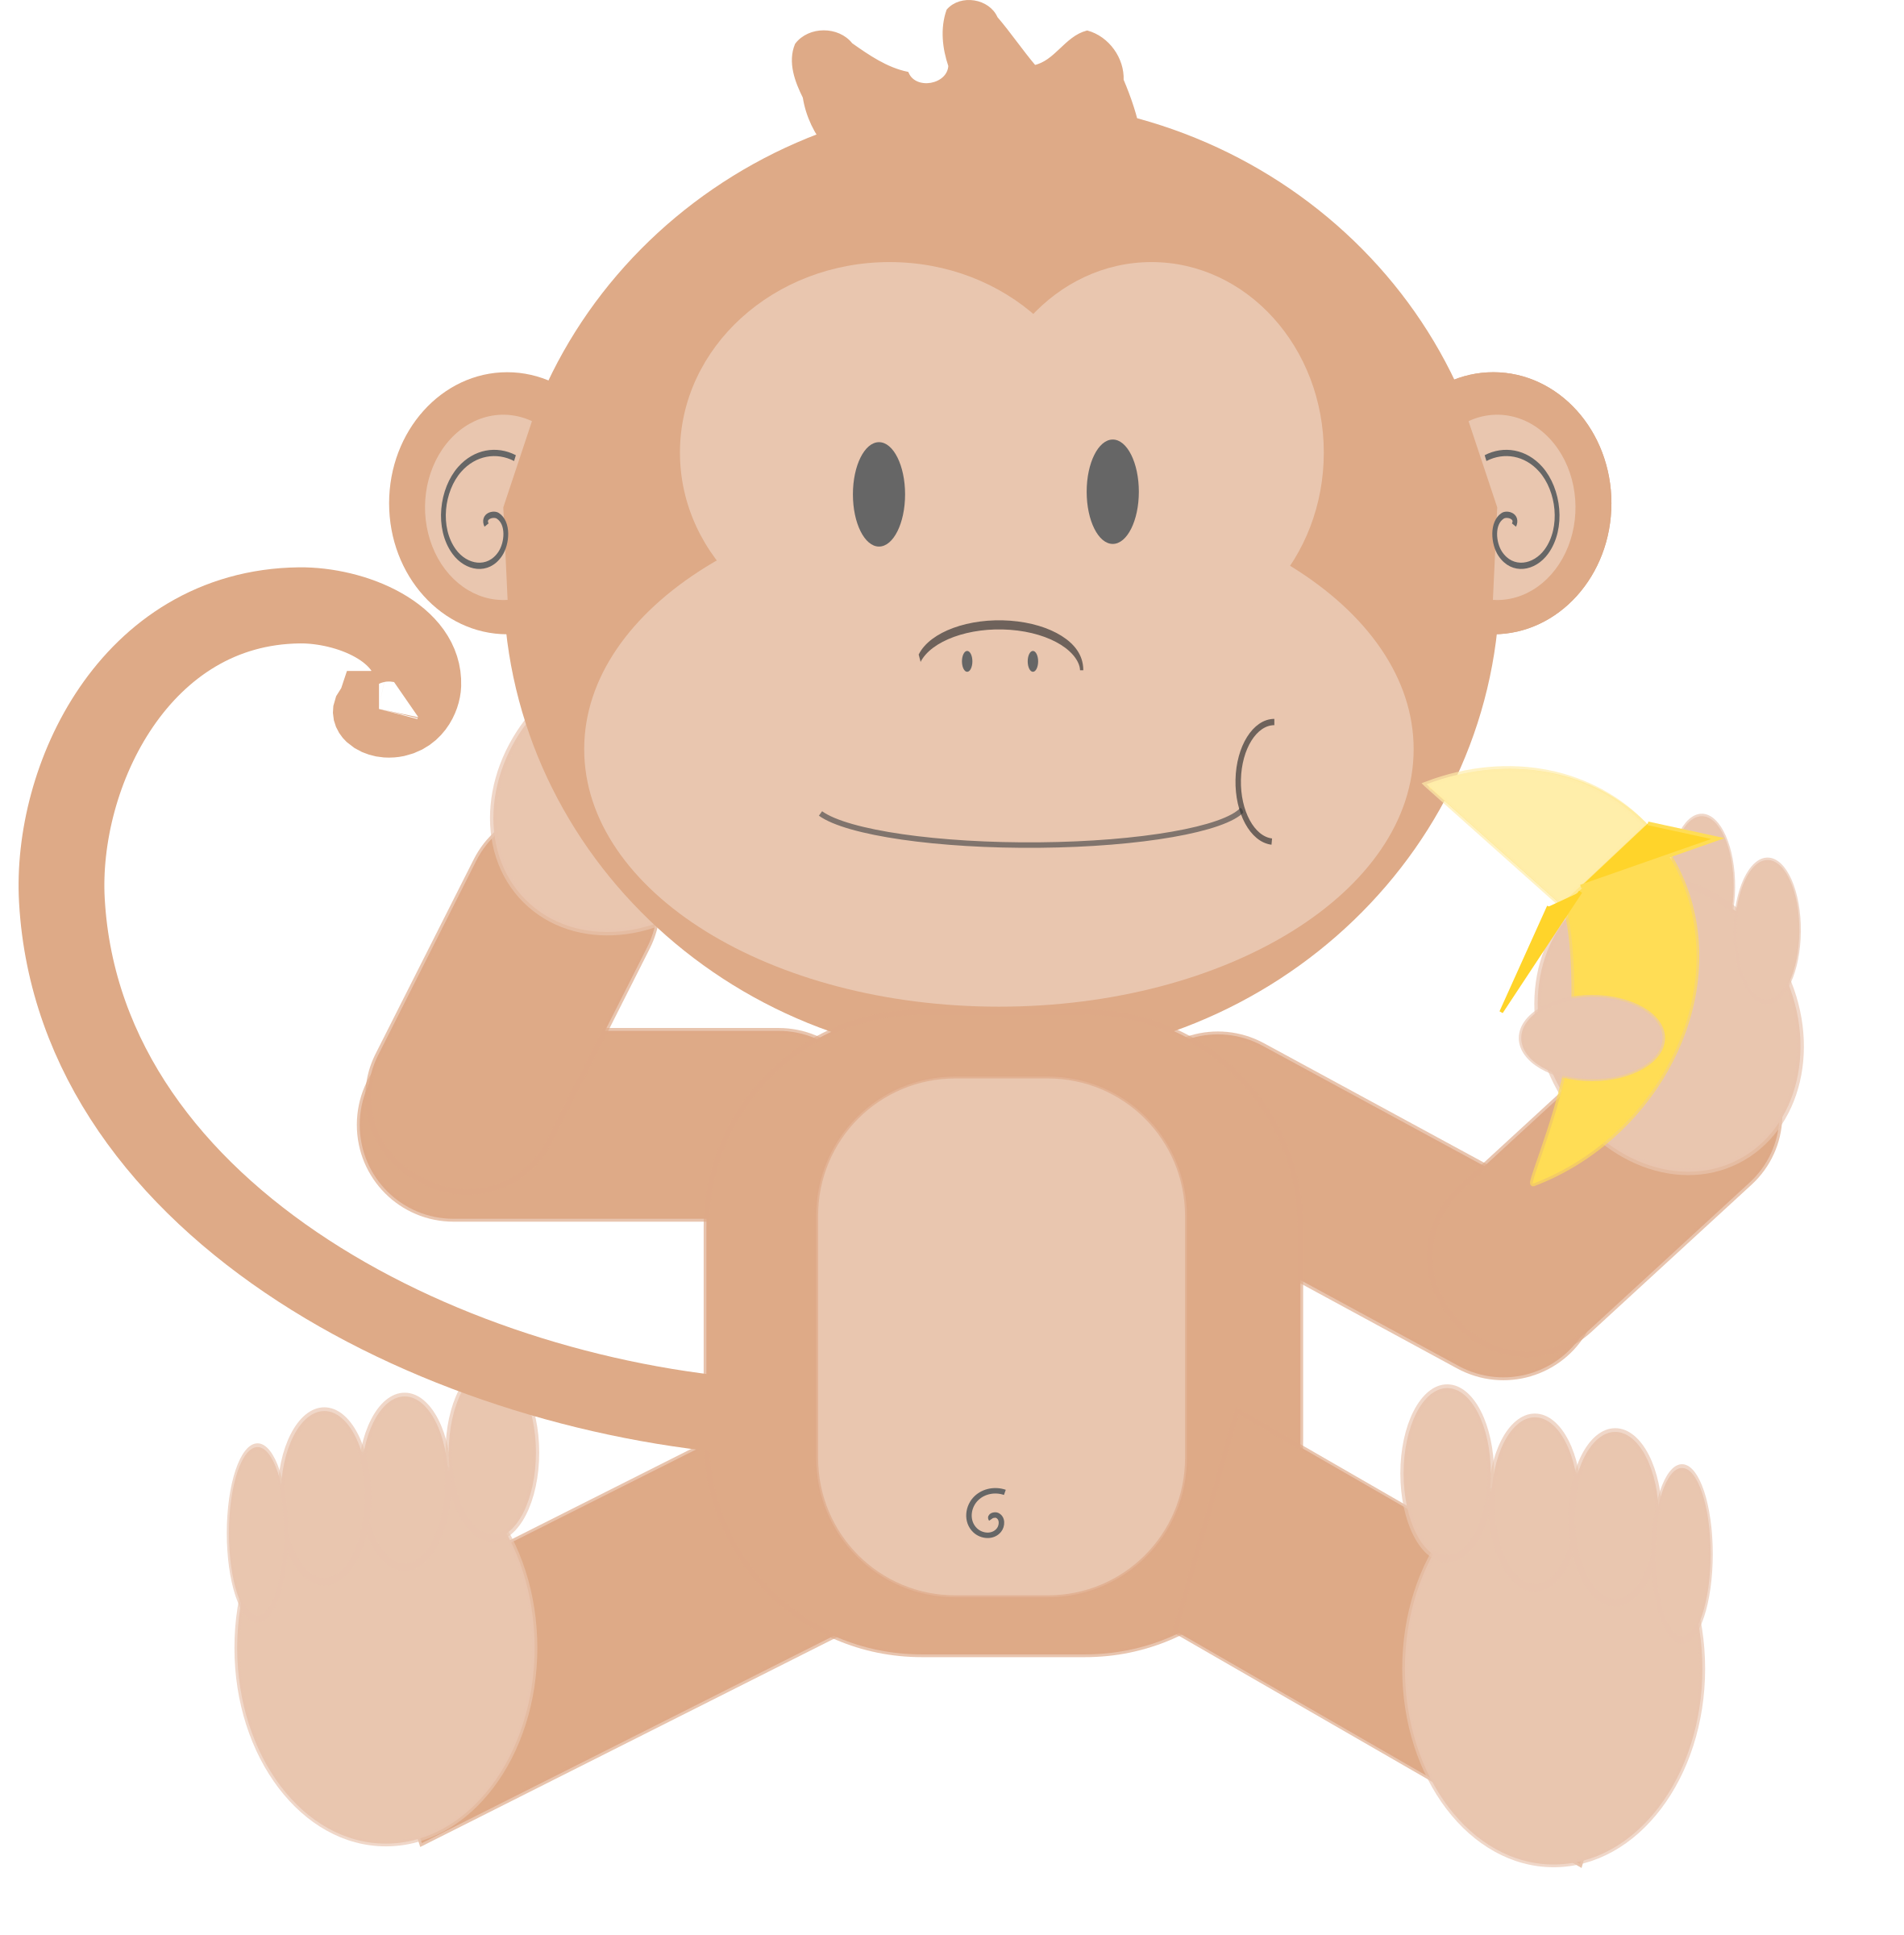 Cartoon monkey without background by talekids